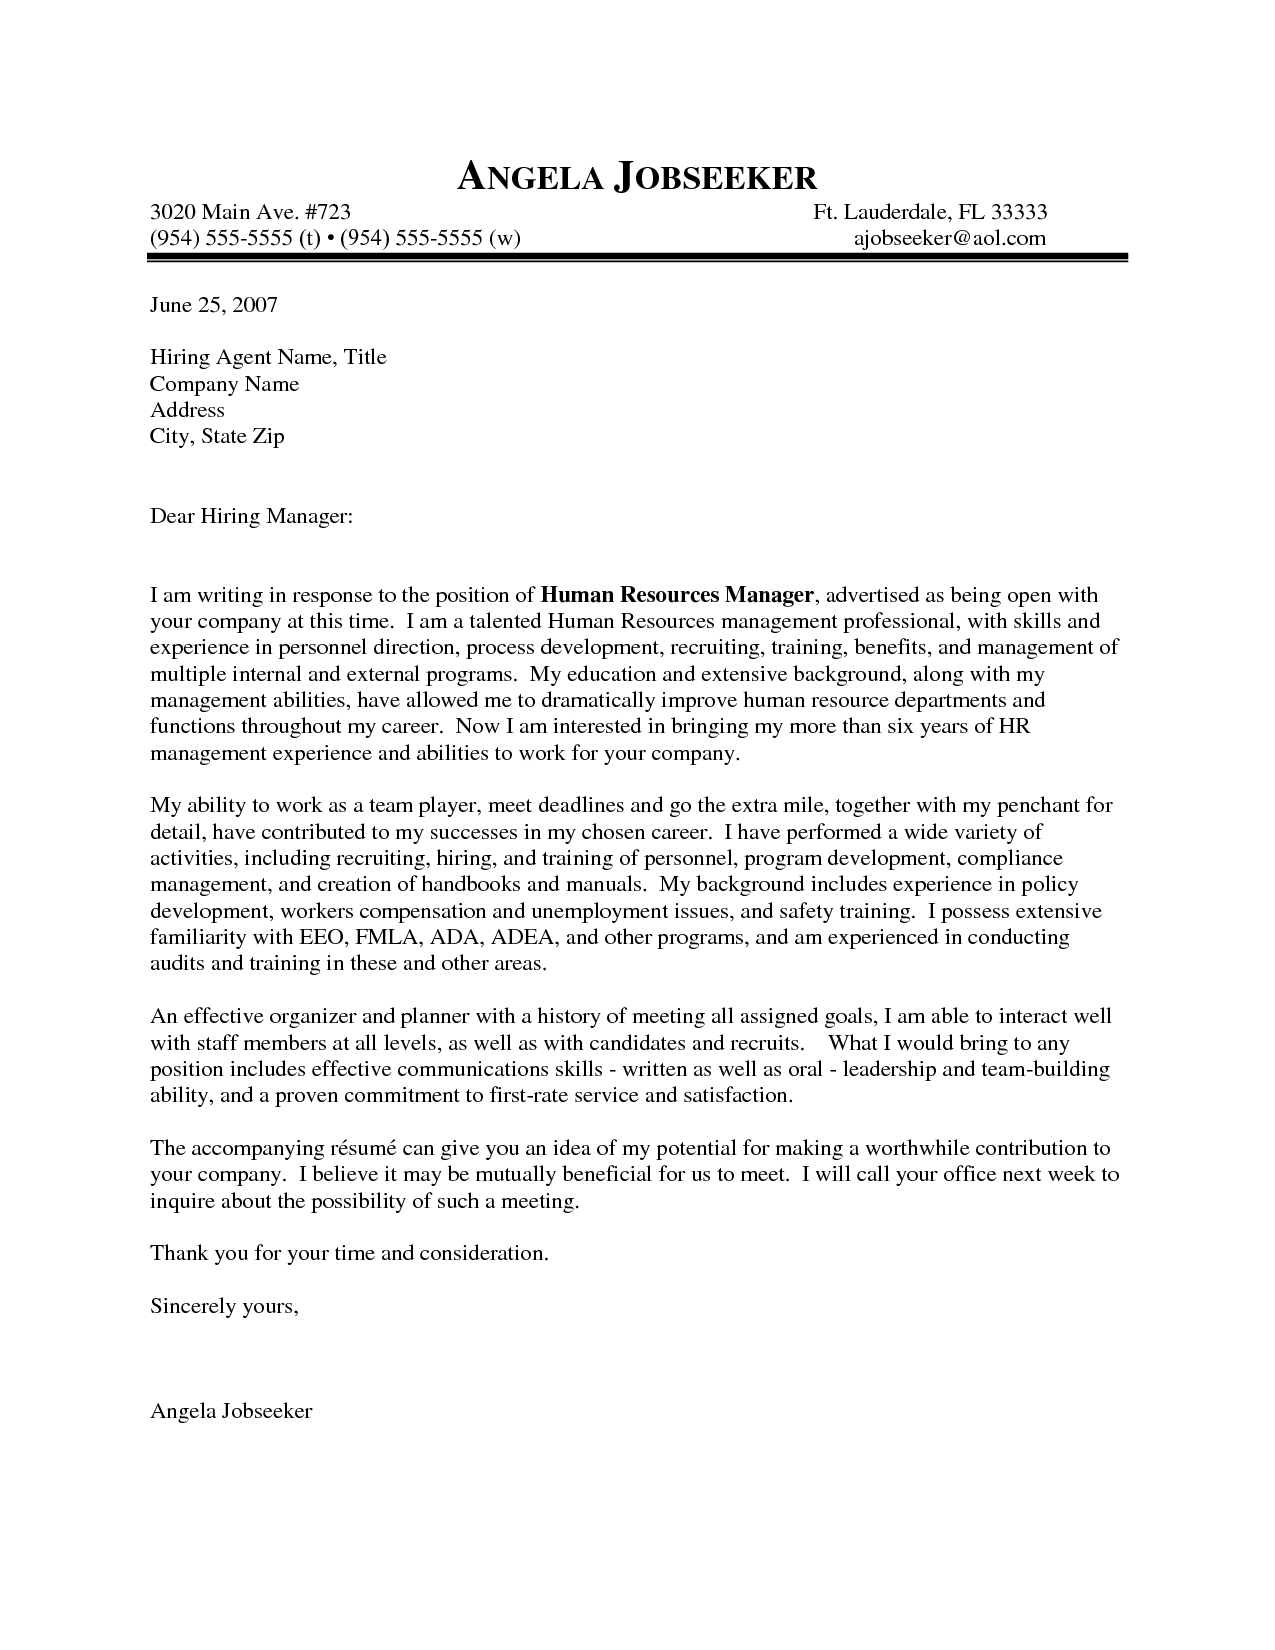 Outstanding Cover Letter Examples – Human Resources Manager Duties